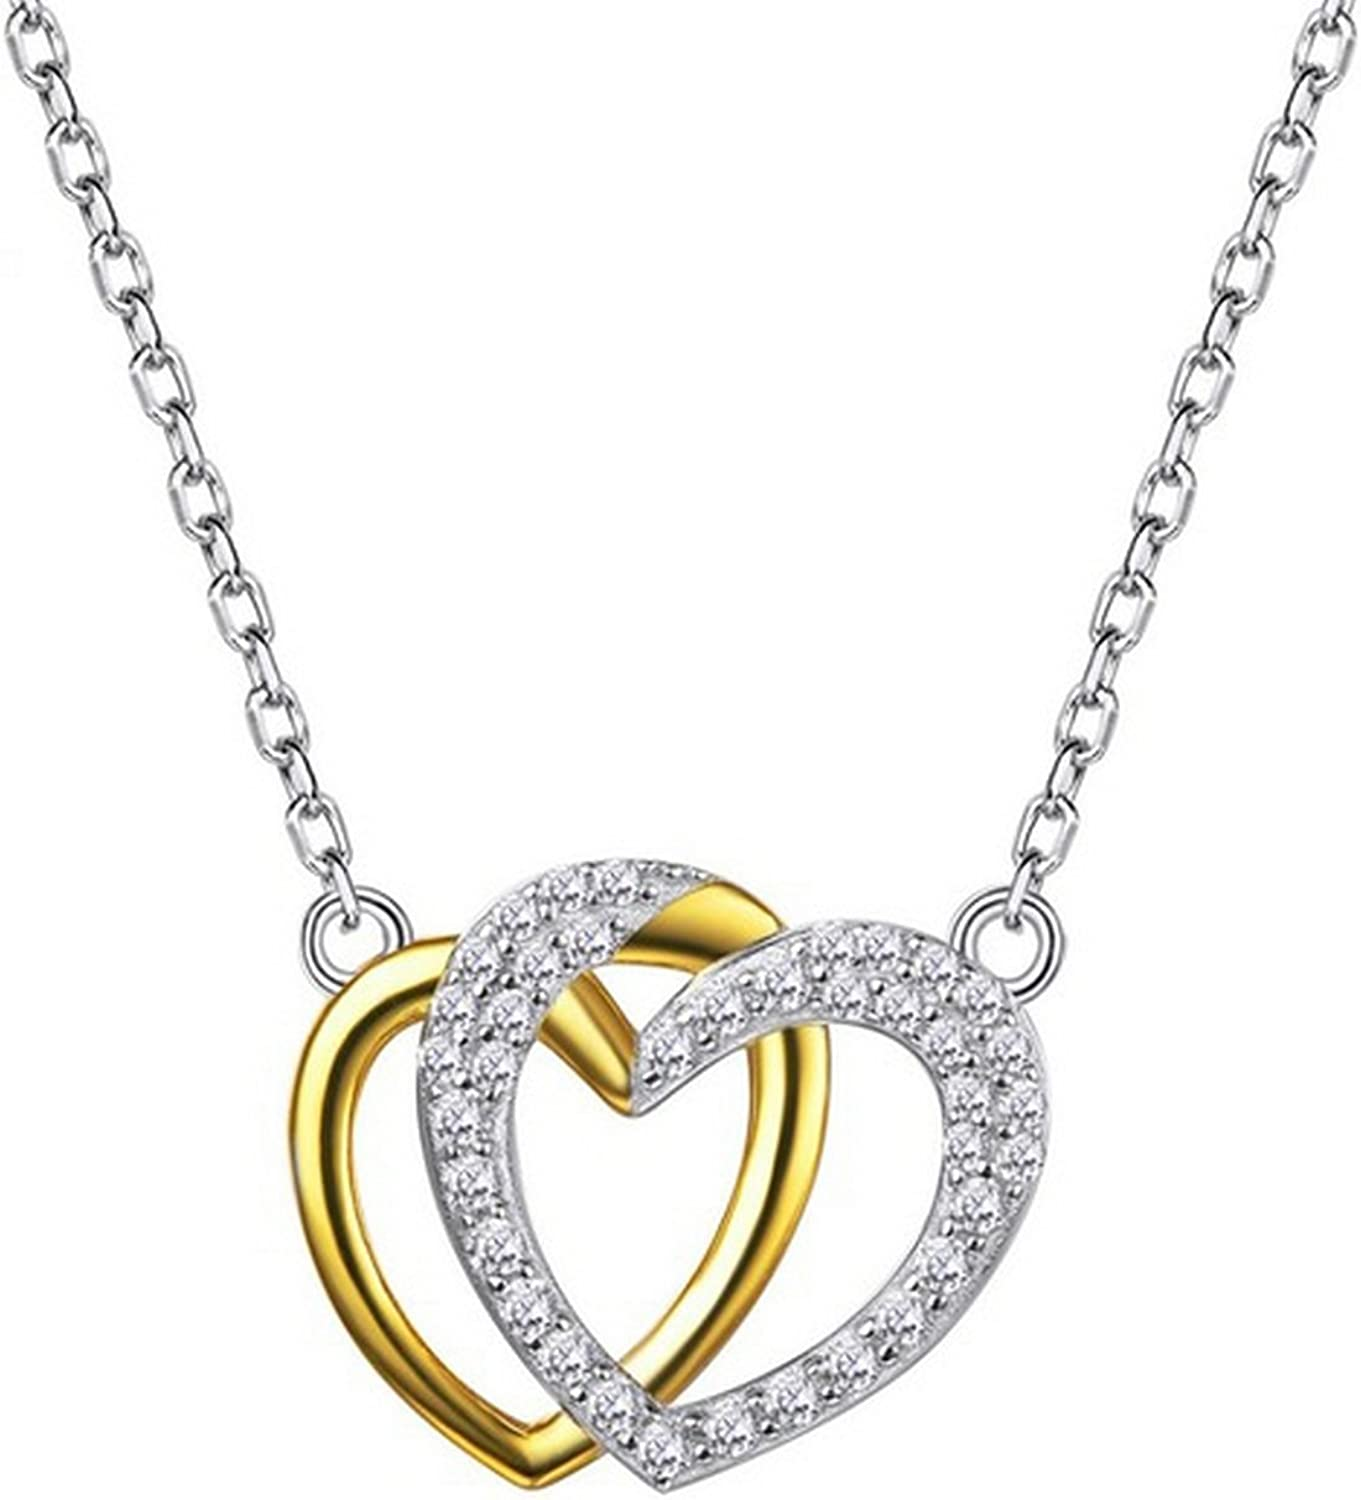 CS-DB Jewelry Silver Chain with CZ Chain Charm Pendants Necklaces